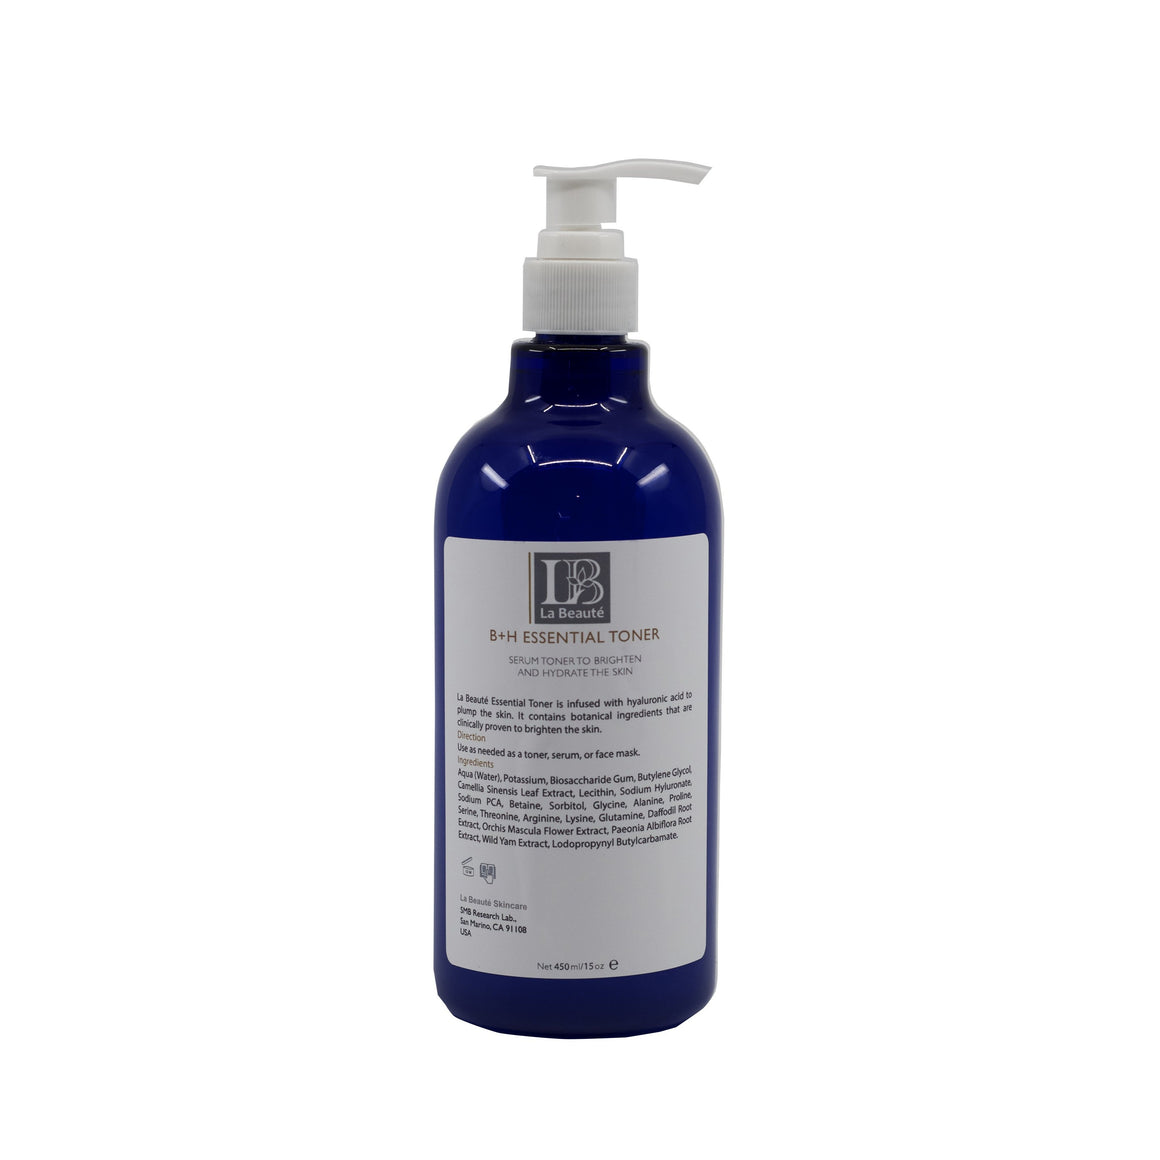 La Beaute - B+H Essential Toner 500ml WS